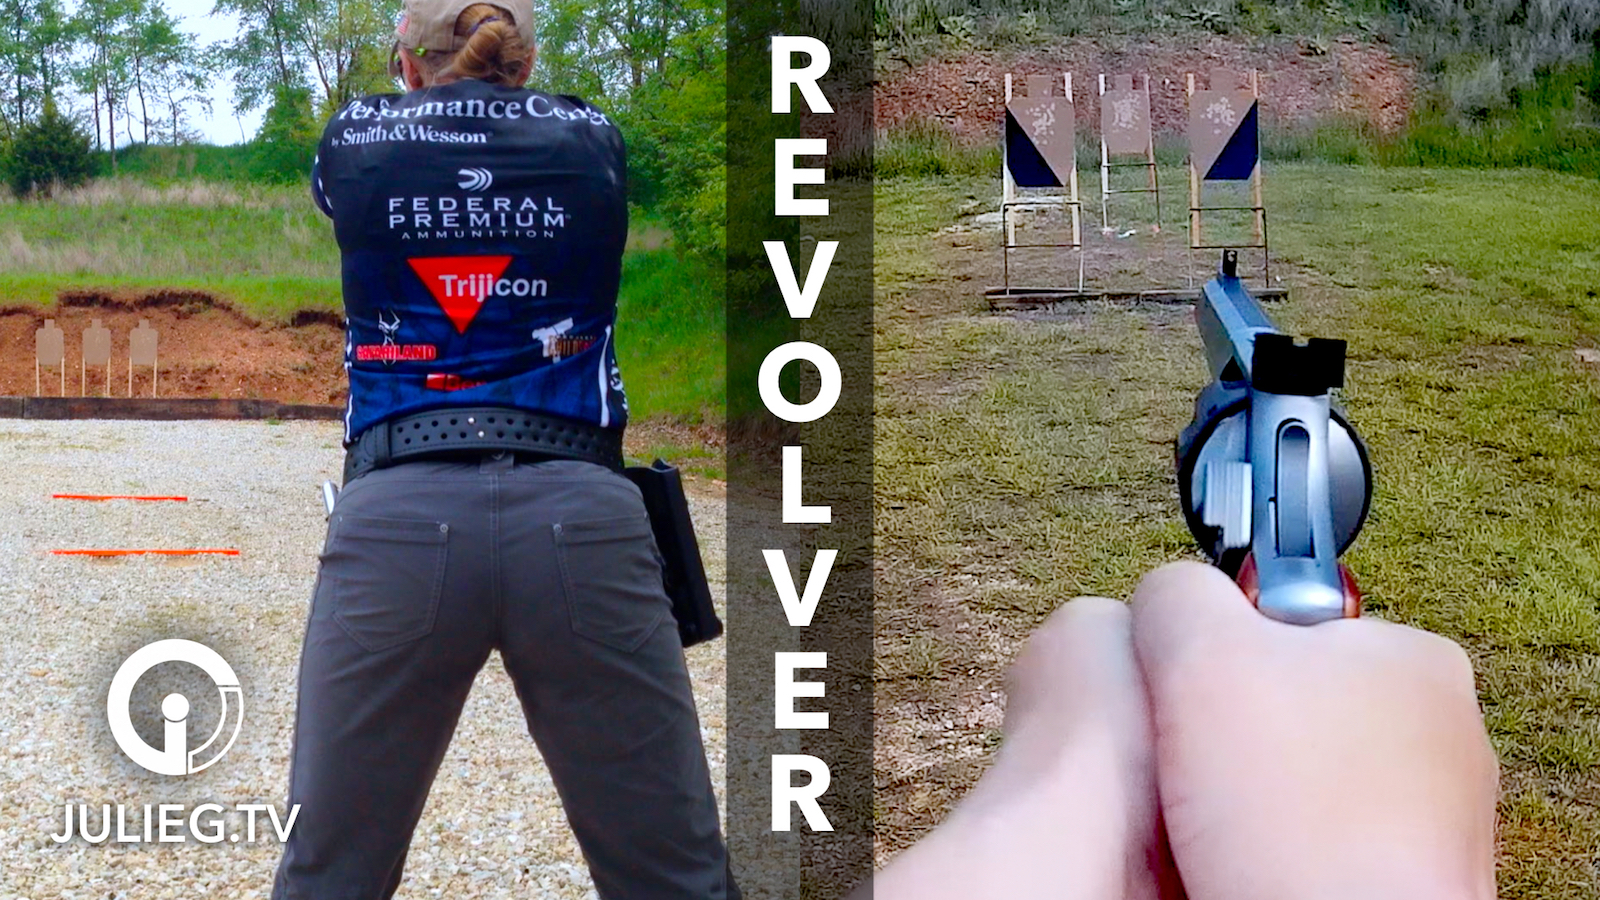 Match Video from 2016 USPSA Revolver Nationals with Julie Golob | JulieG.TV